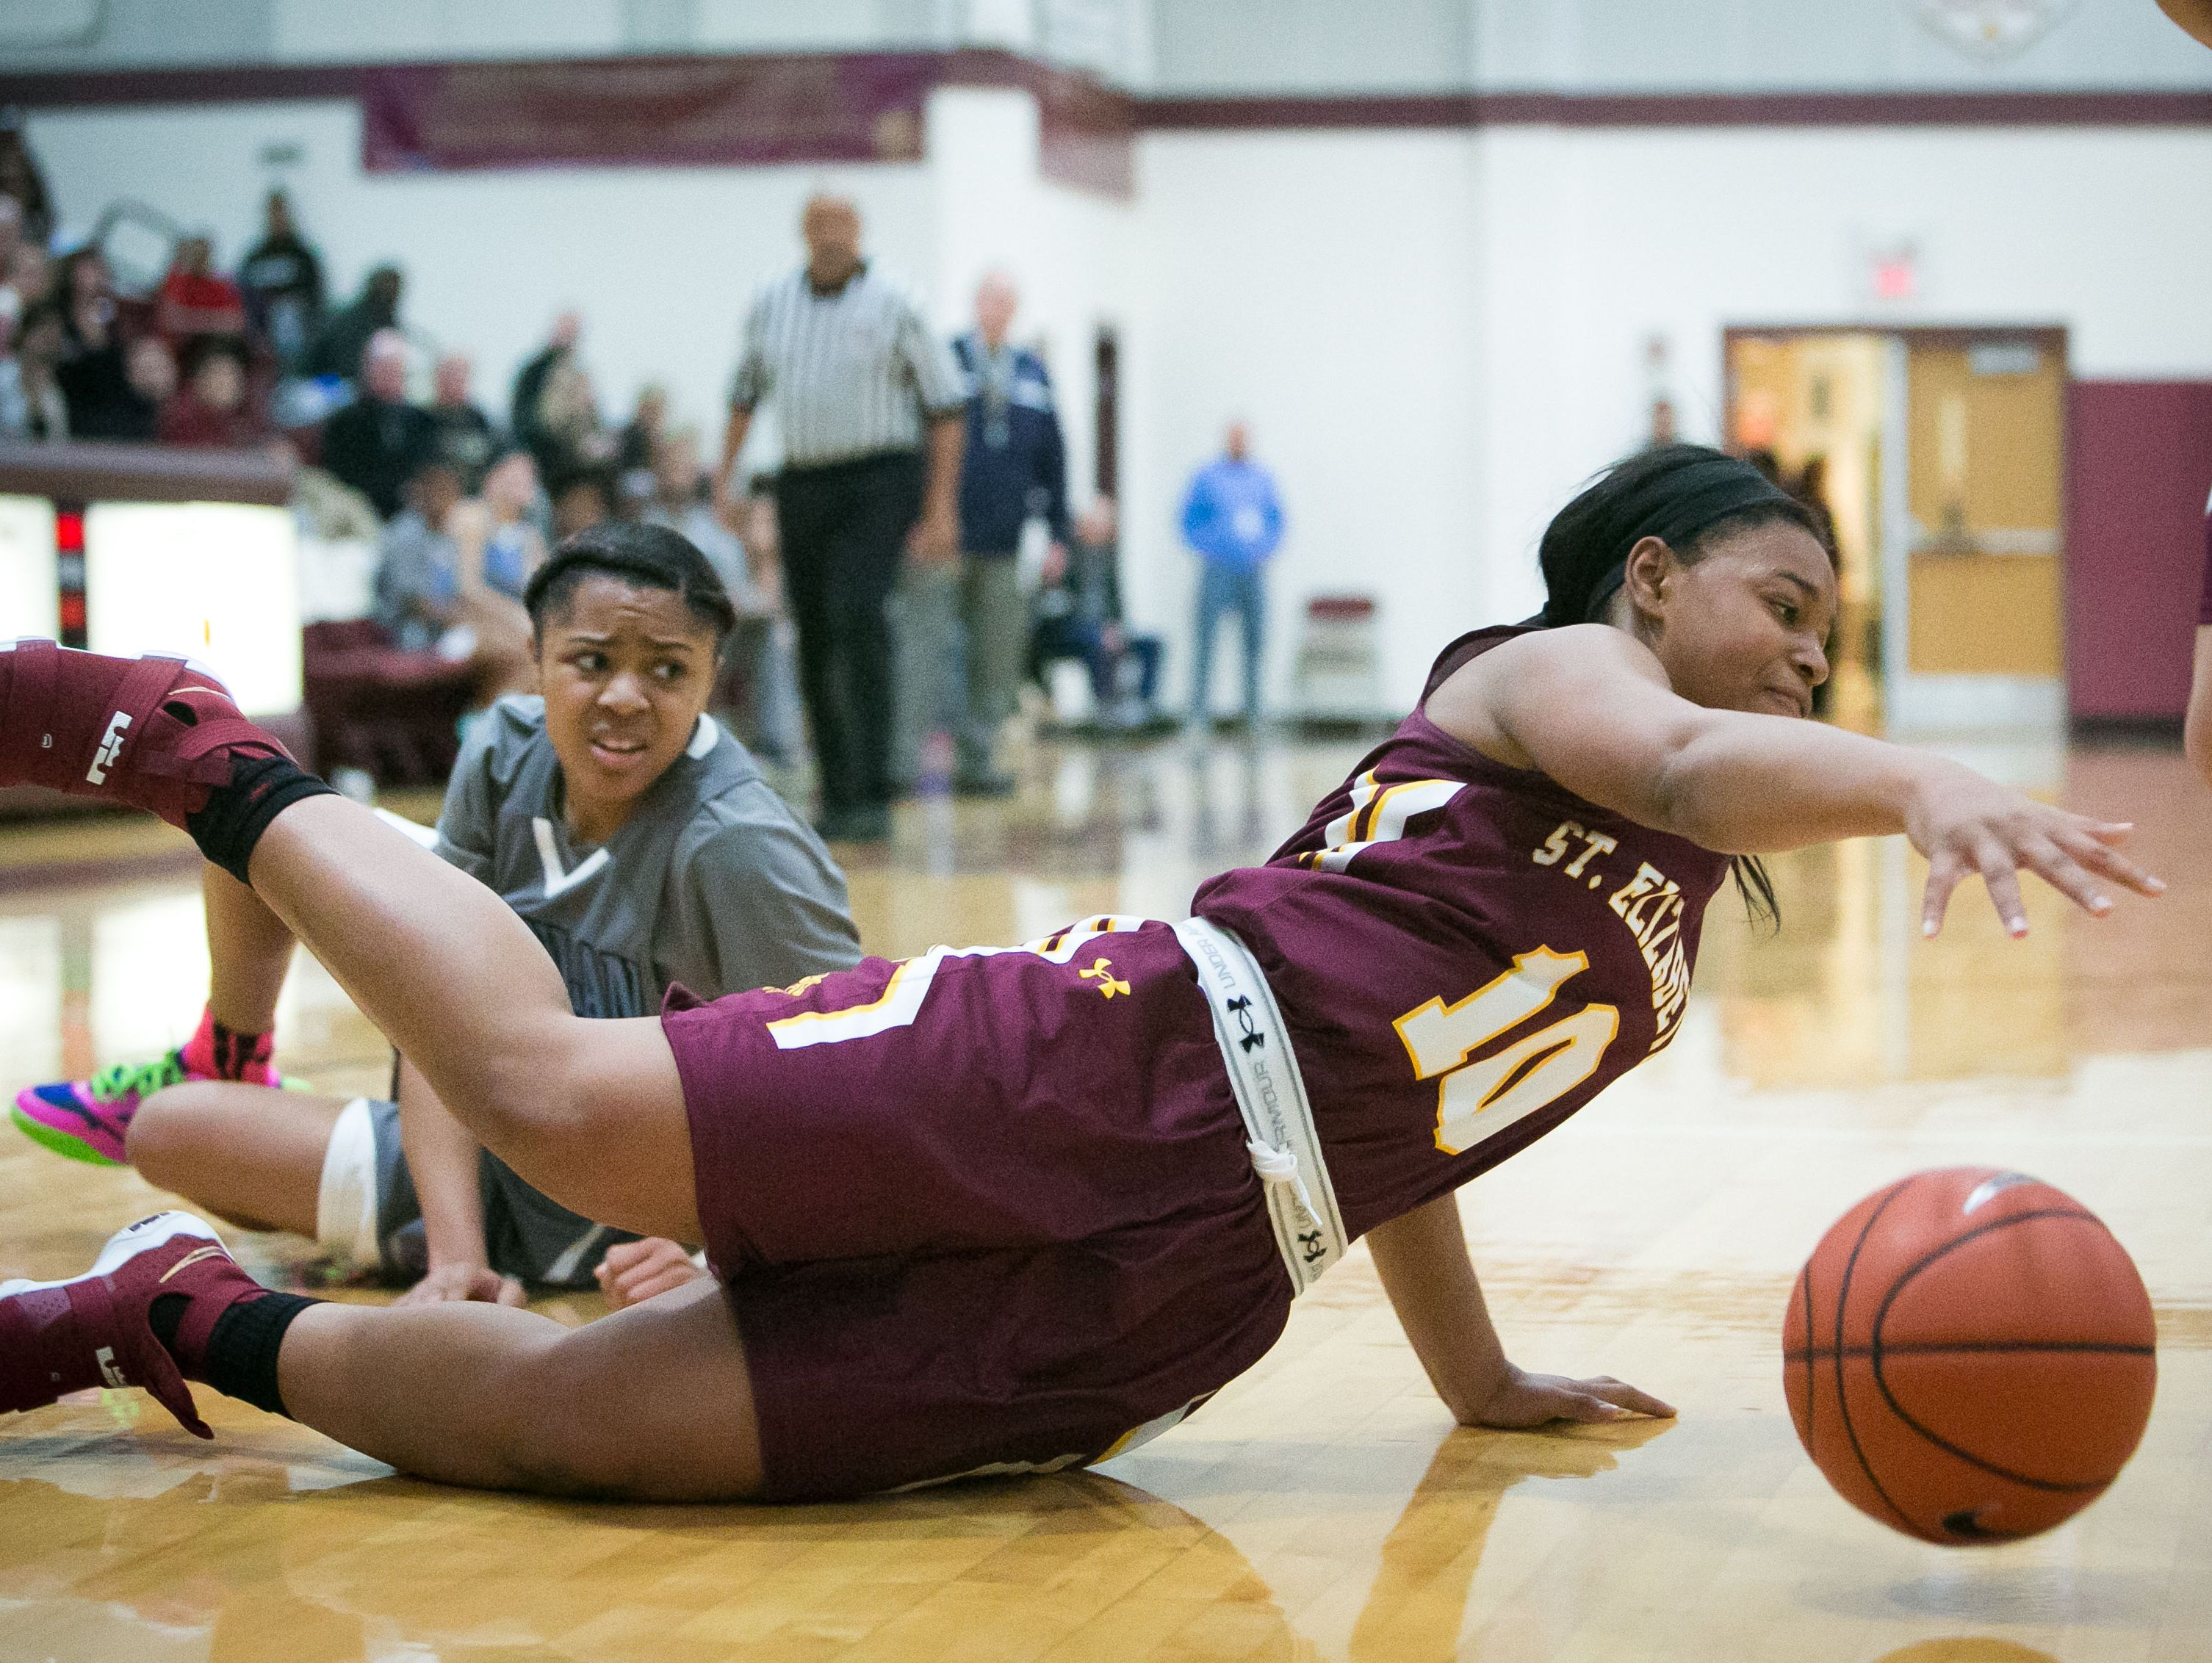 St. Elizabeth guard Sha'Nia Davis gets tripped up driving to the basket late in the game with no fouled called as they lose to Monsignor Scanlan with a final score of 53-44 in the Diamond State Classic at St. Elizabeths School.